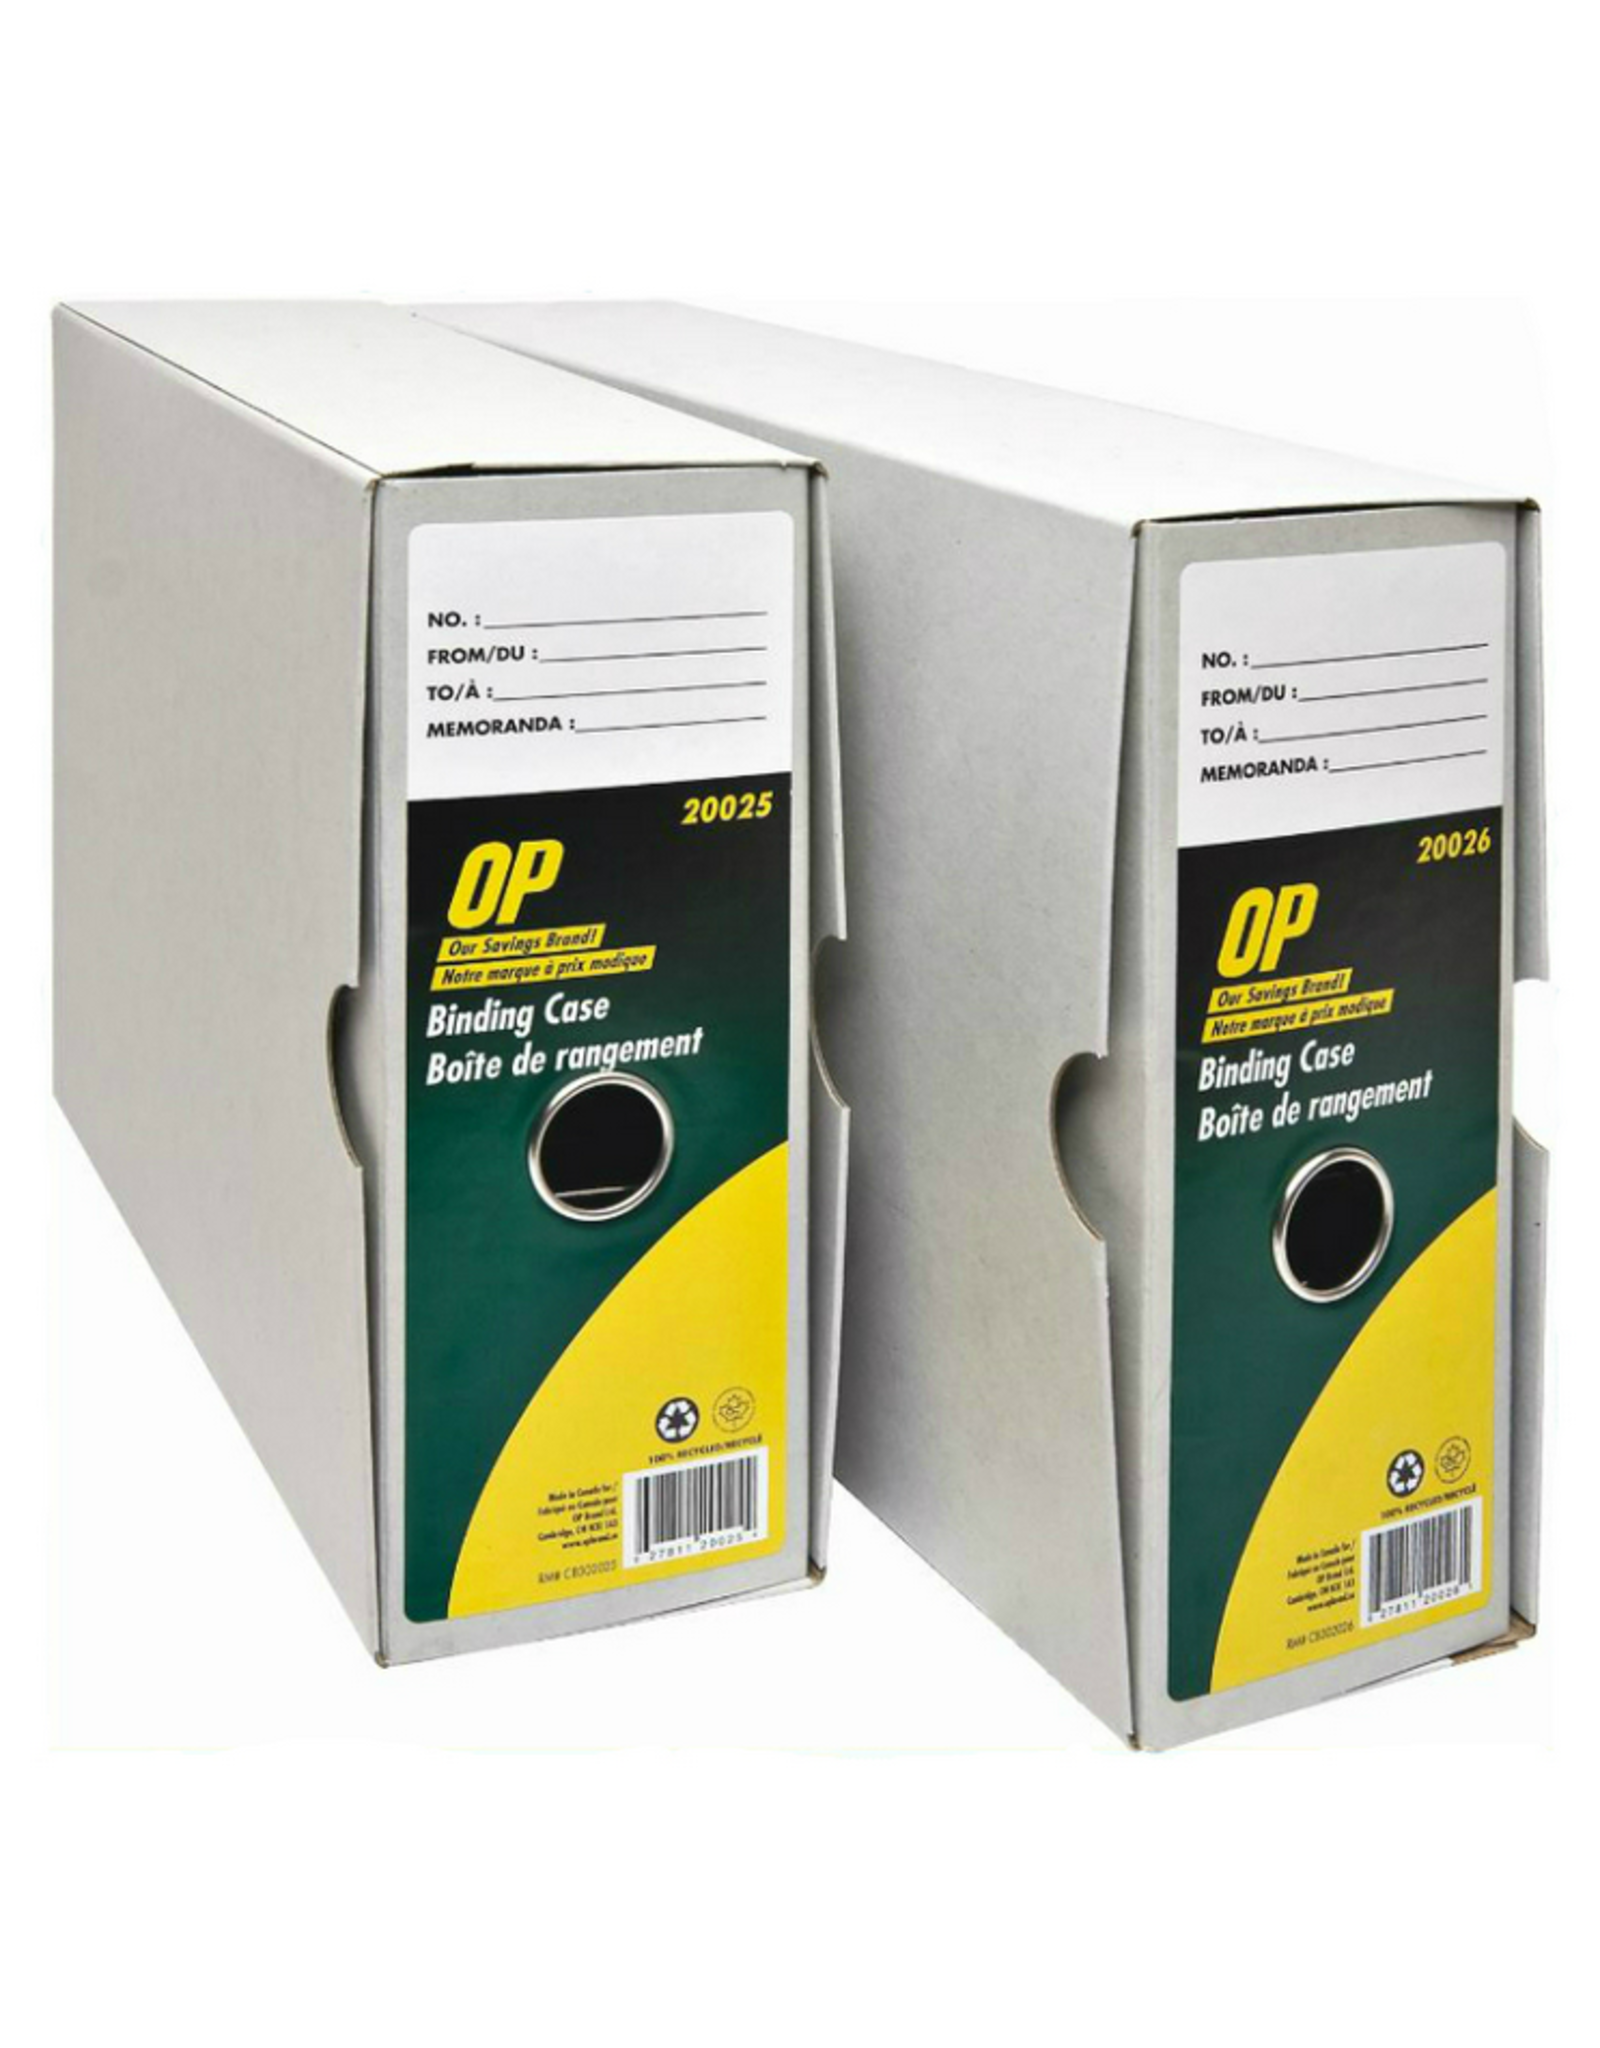 Office Plus BINDING CASE-LEGAL, RECYCLED OP BRAND 6/PK